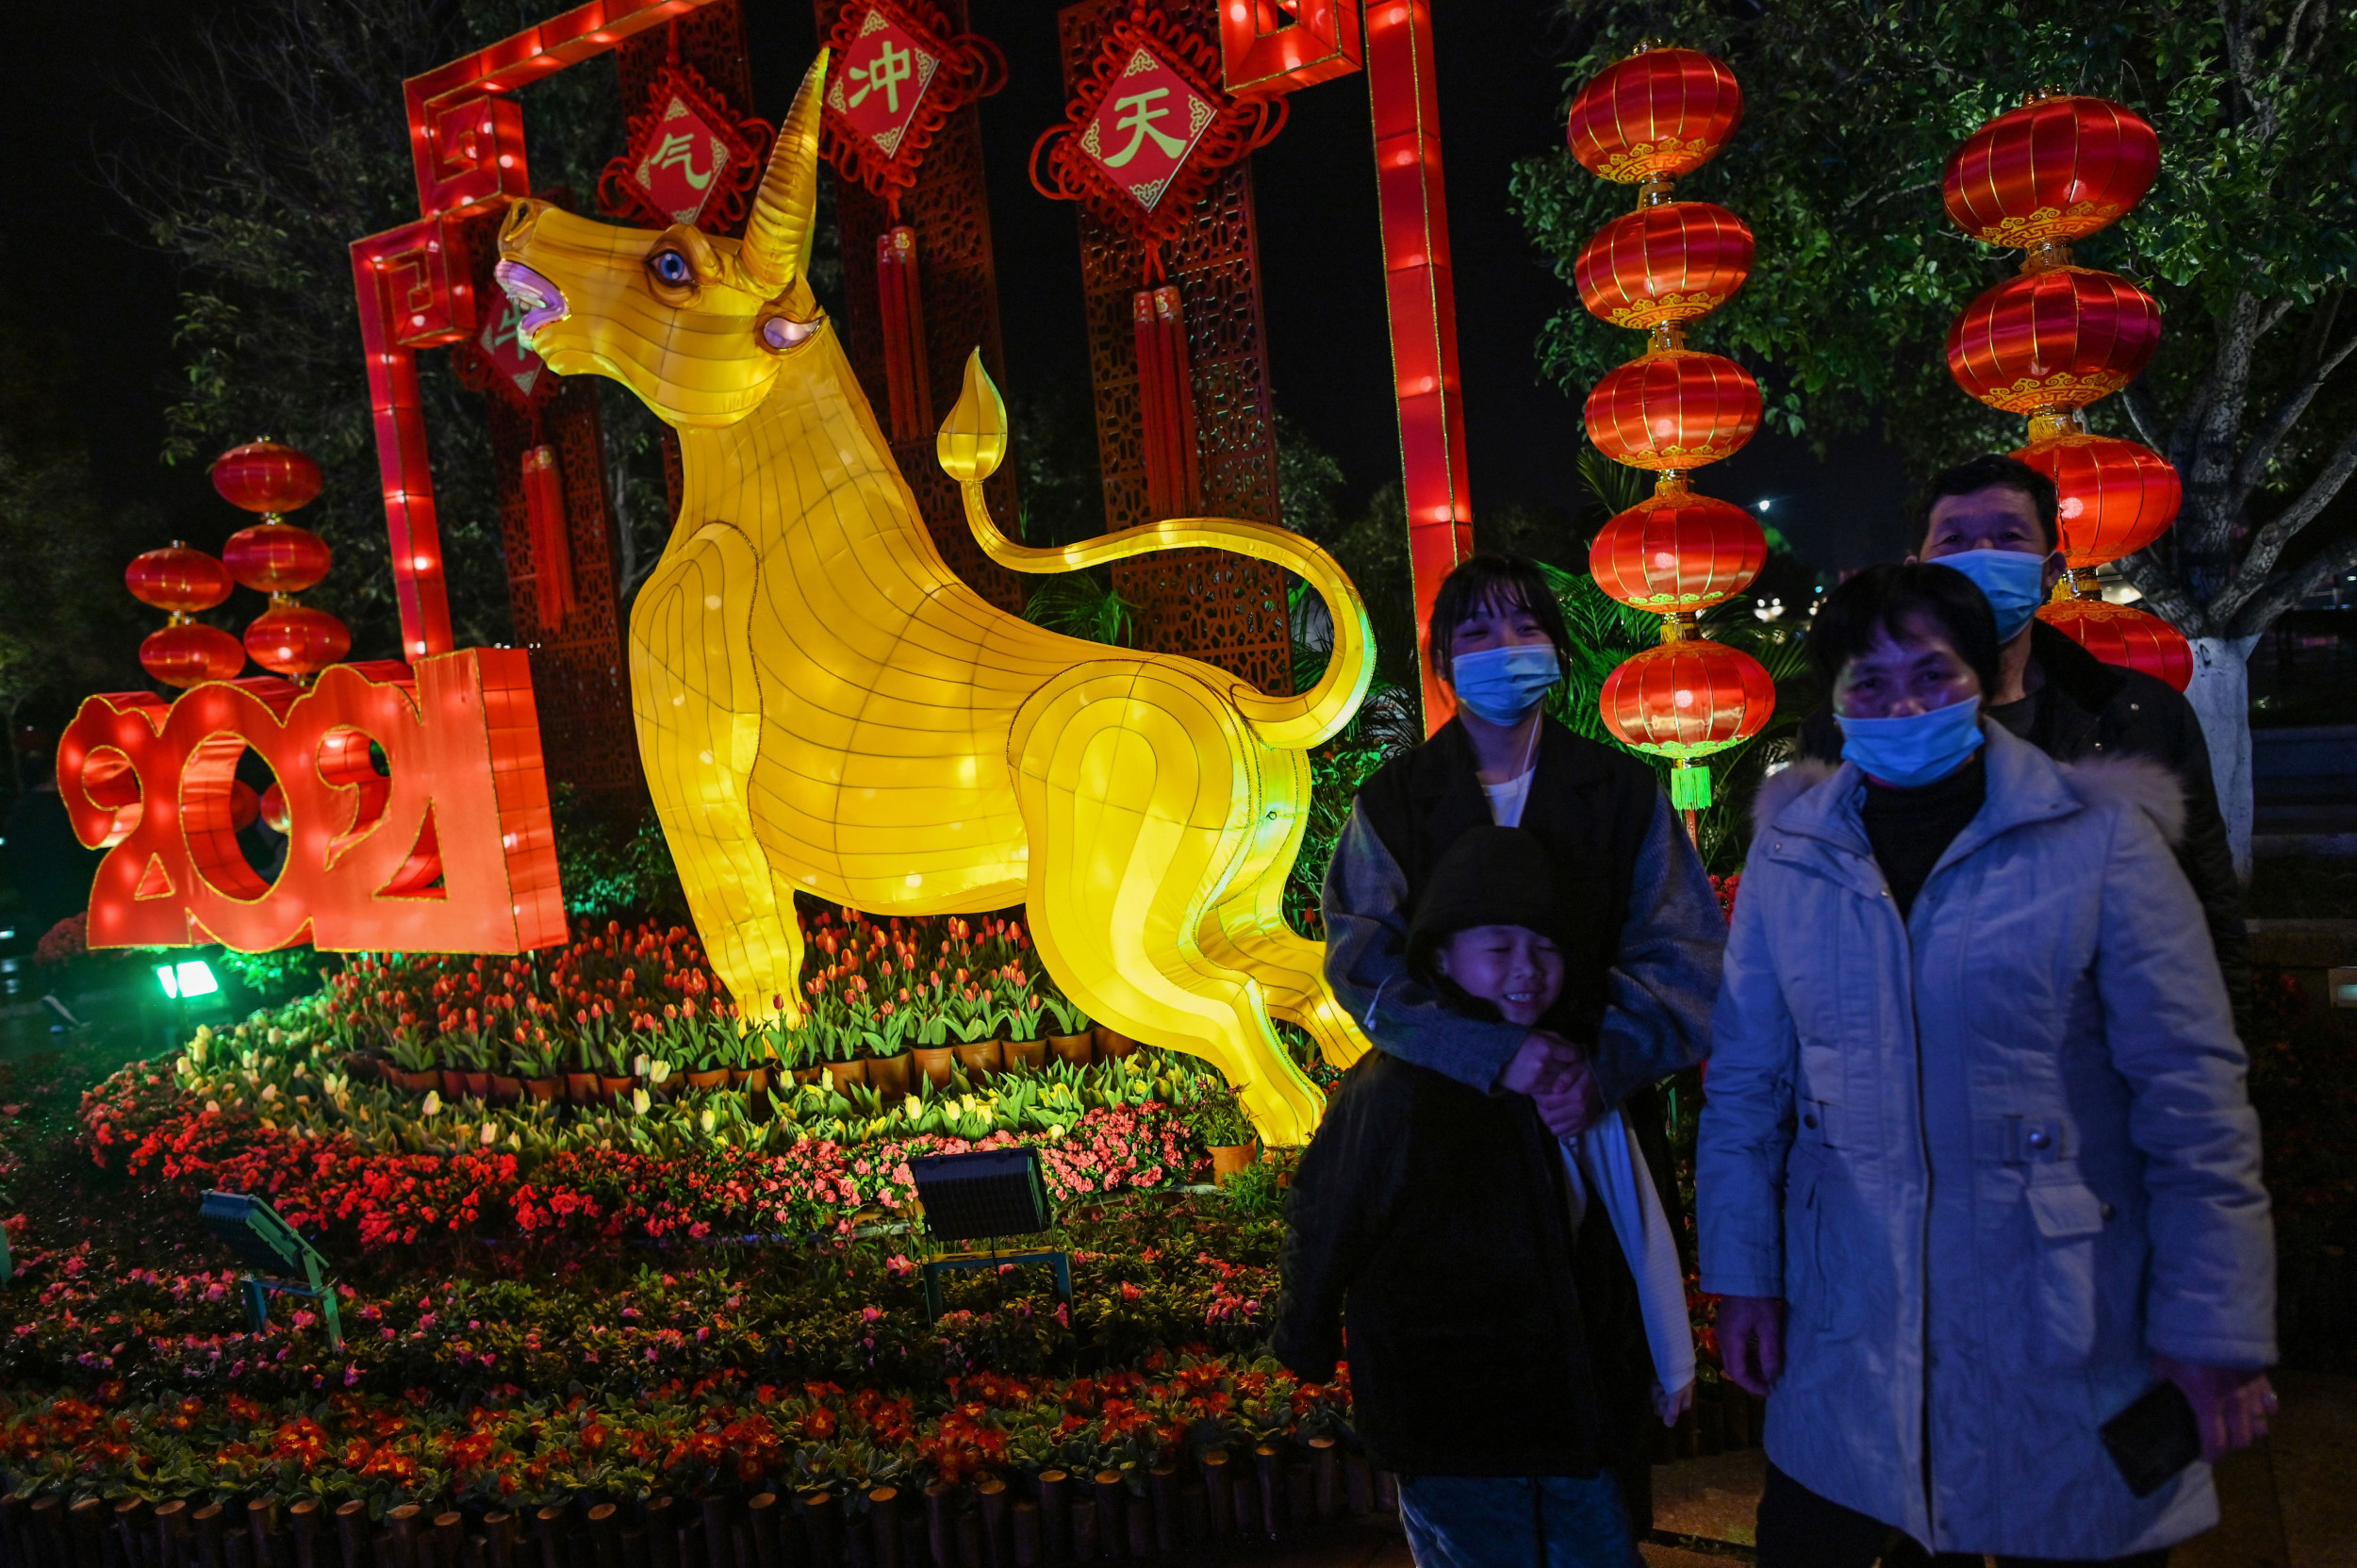 Happy Chinese New Year 2021 Greetings, Images and Memes to Share